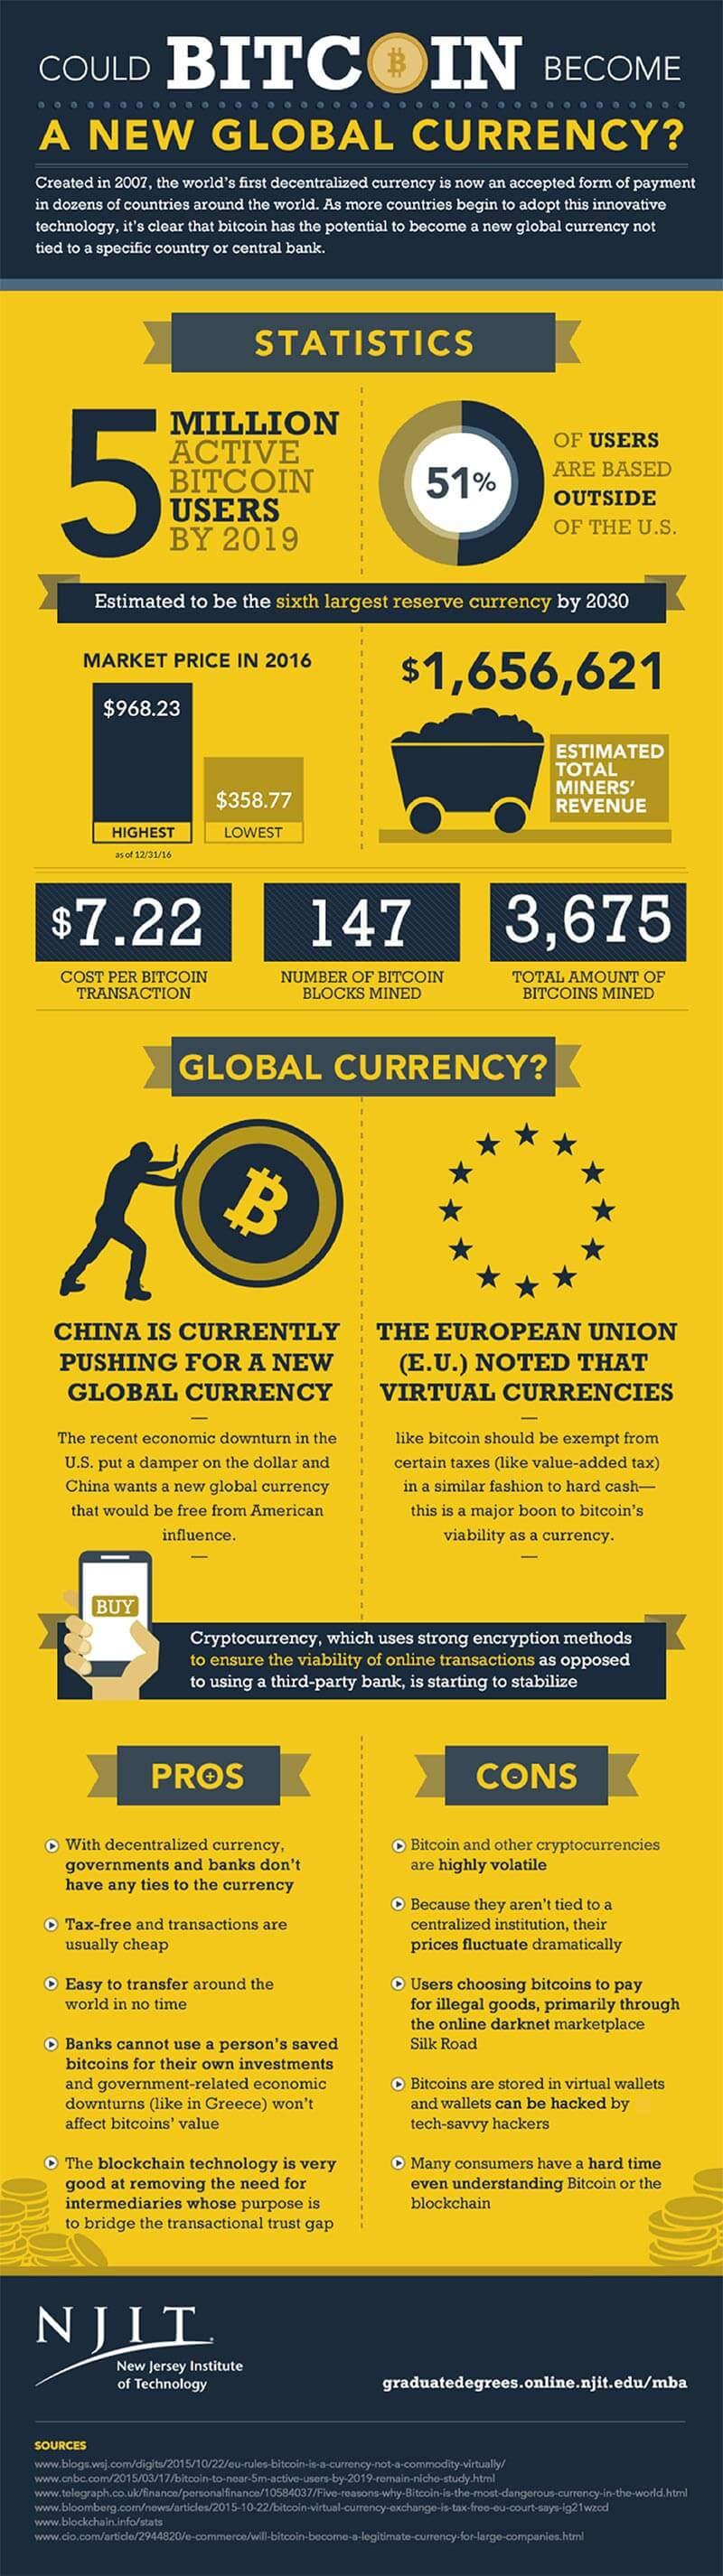 Image of Bitcoin Infographic Being a Global Currency.